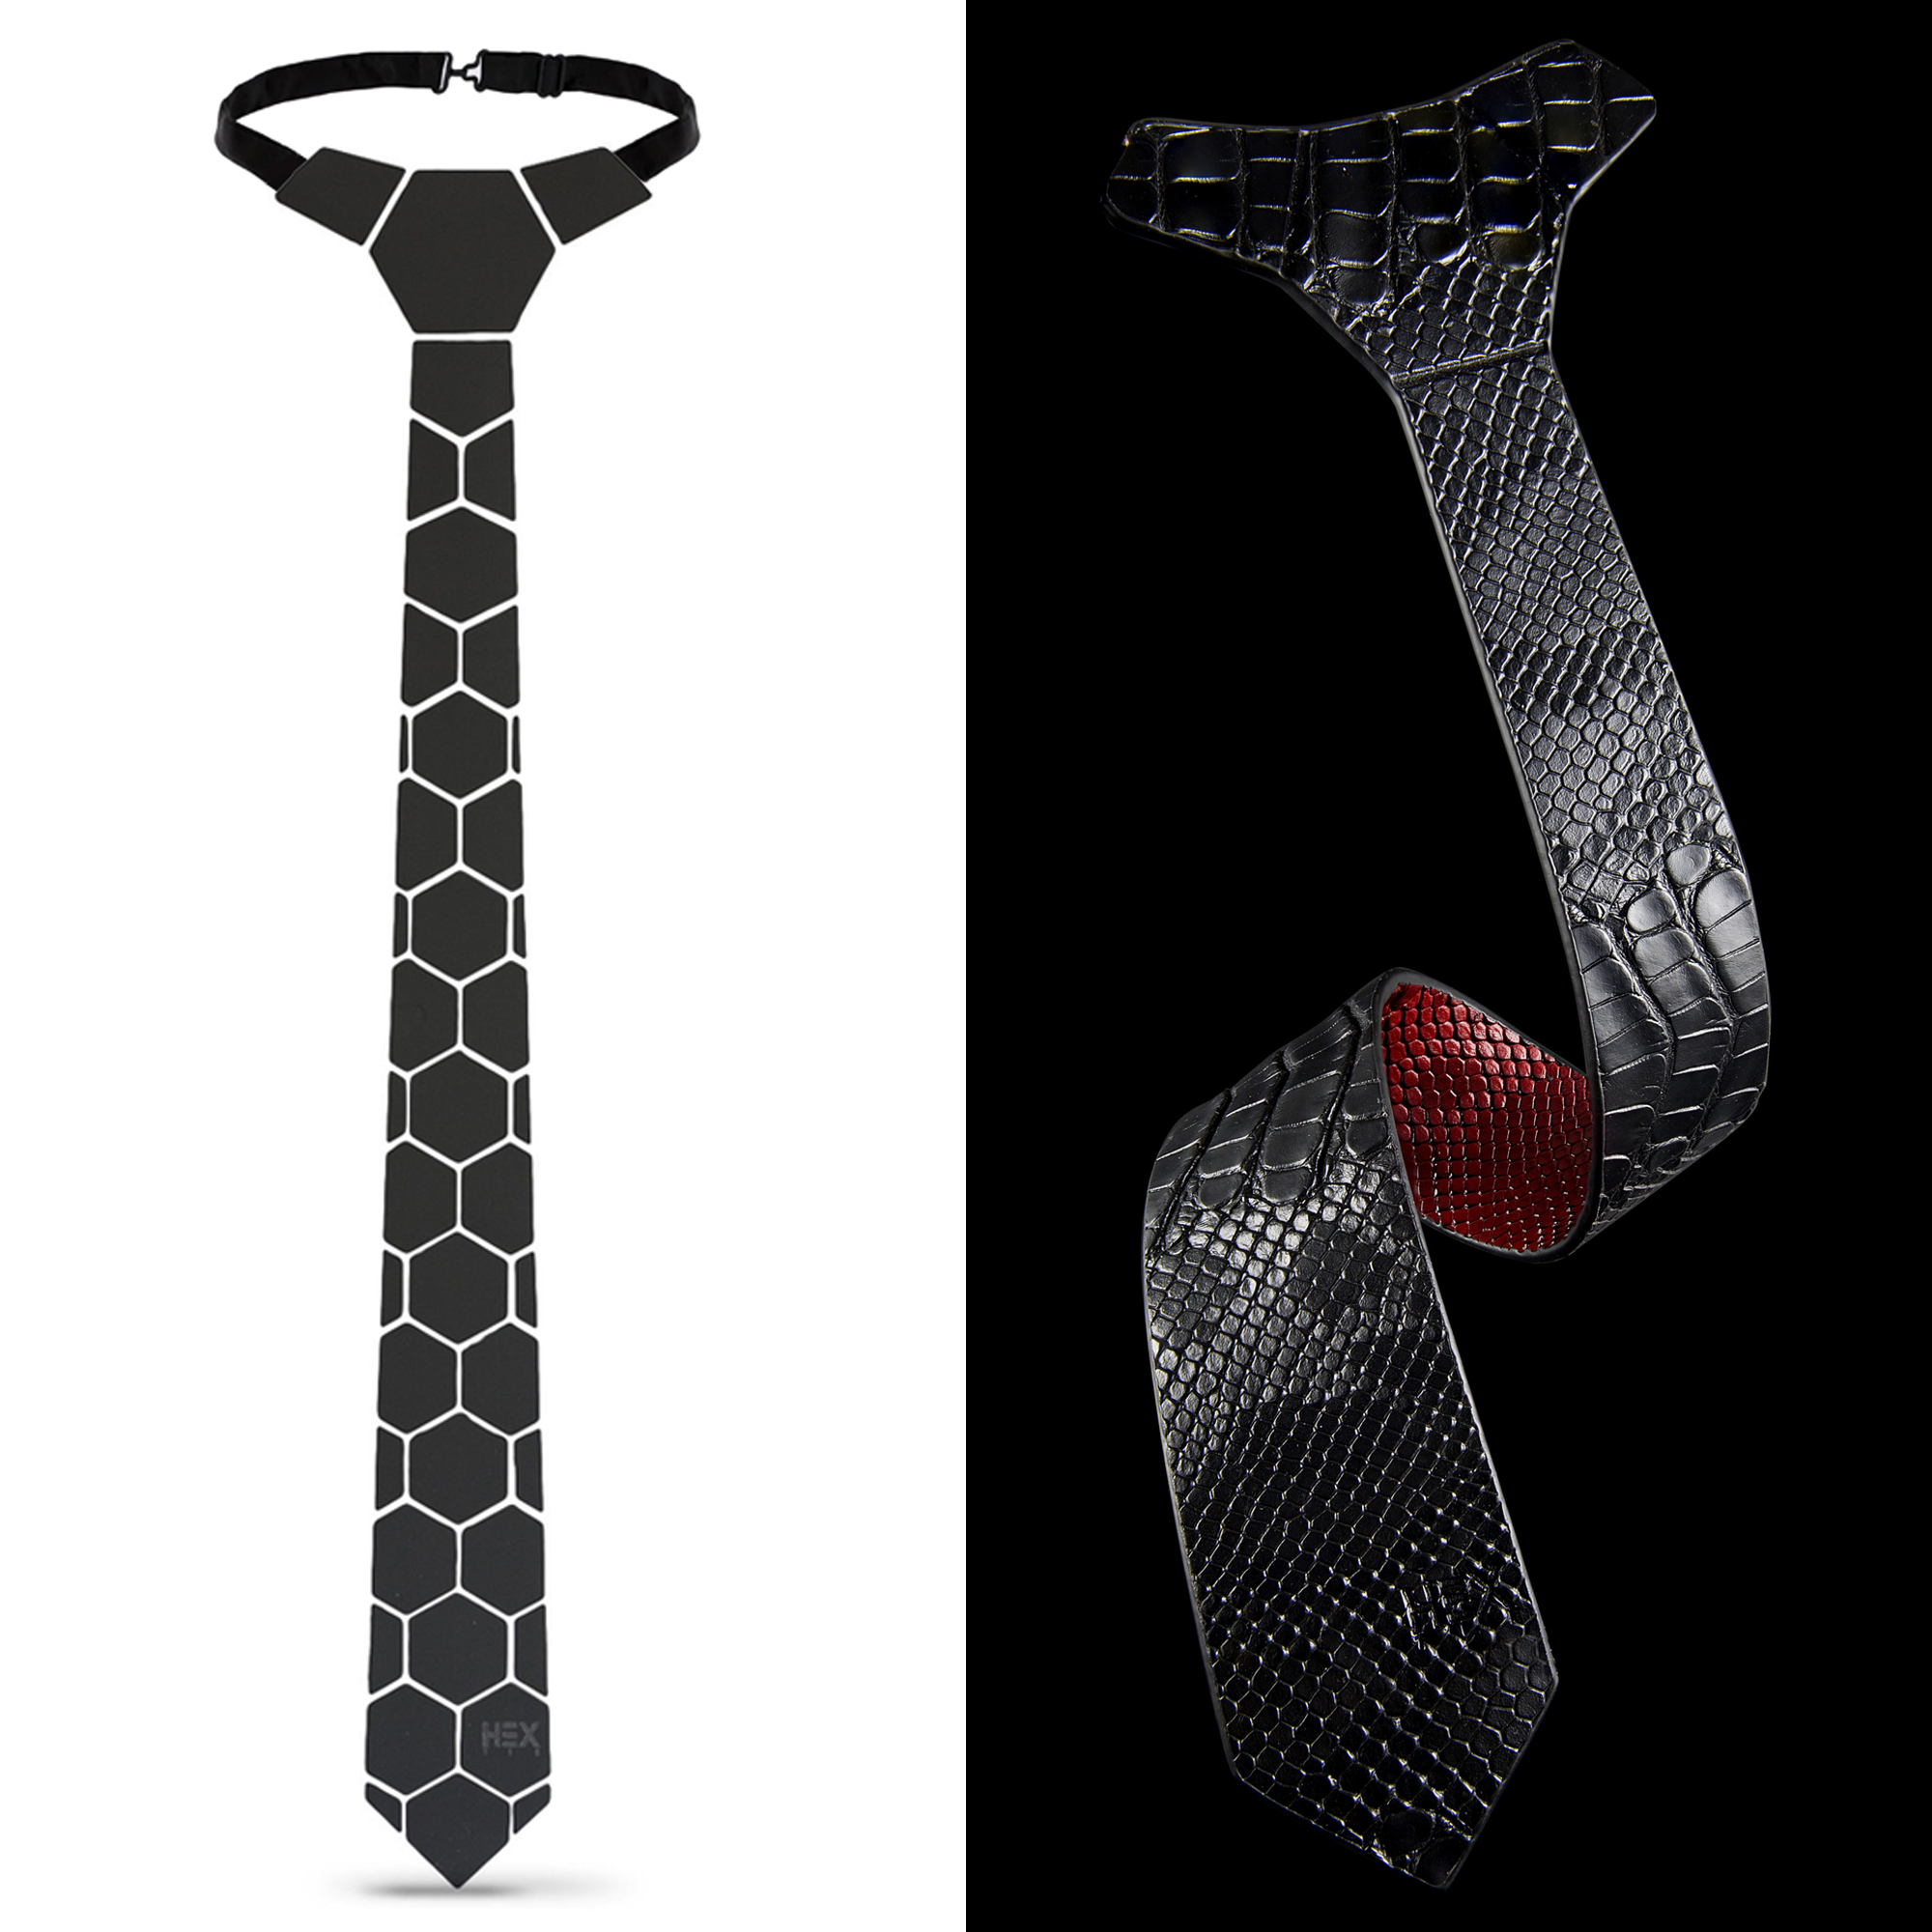 Honeycomb and Bloody Shoe Tie Combo